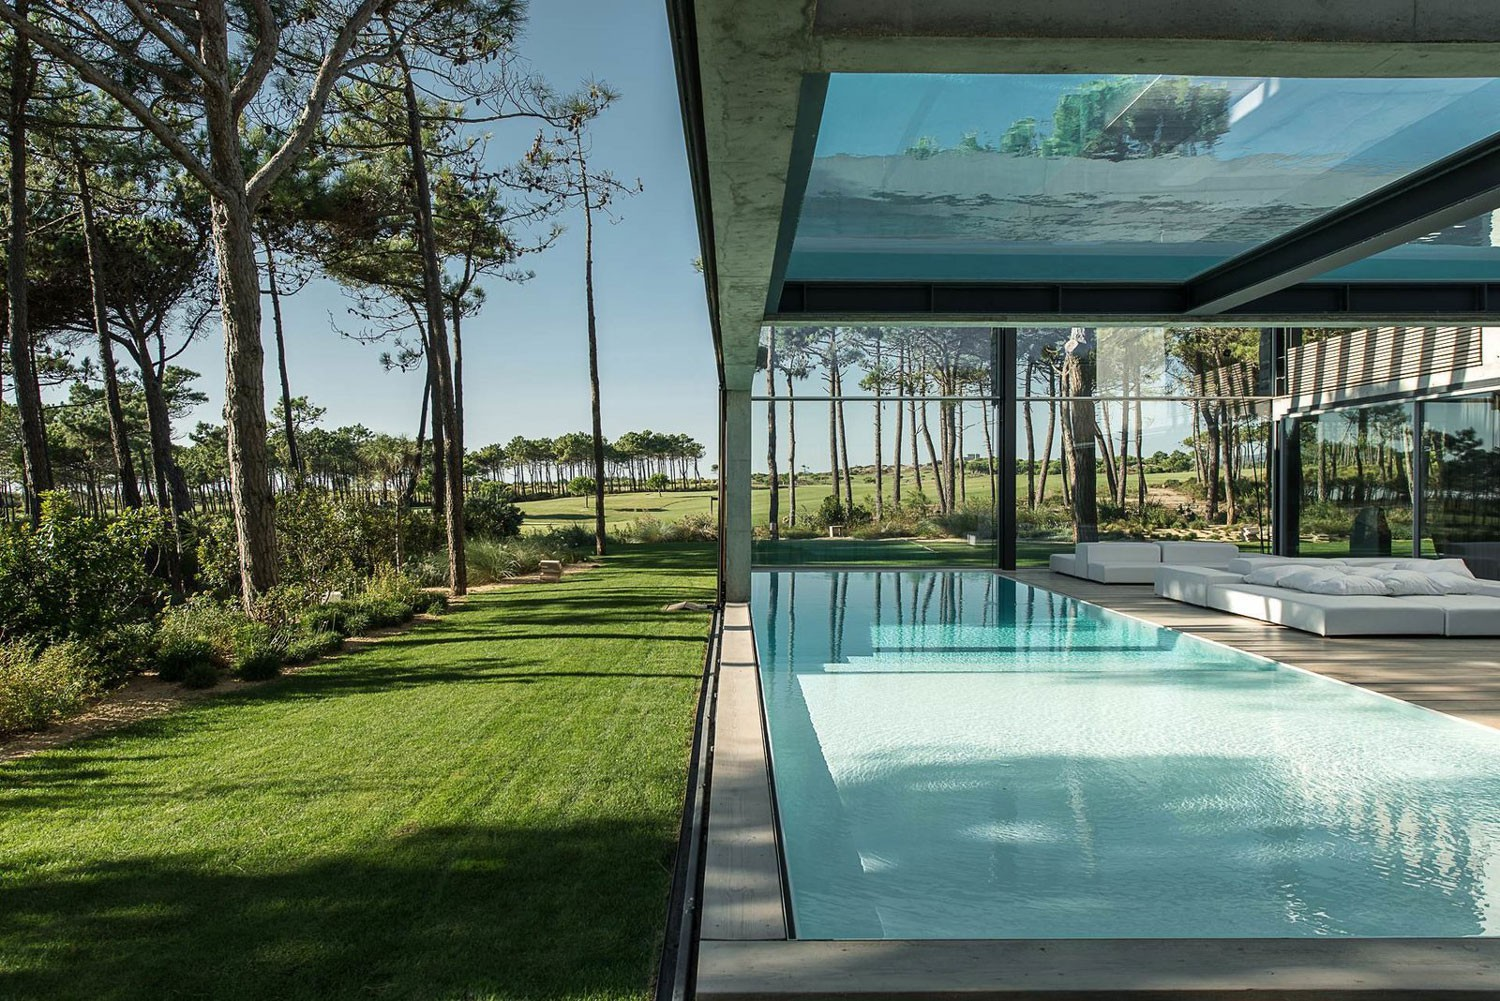 The-Wall-House-on-Portuguese-Riviera-by-Guedes-Cruz-Arquitectos-Yellowtrace-04.jpg